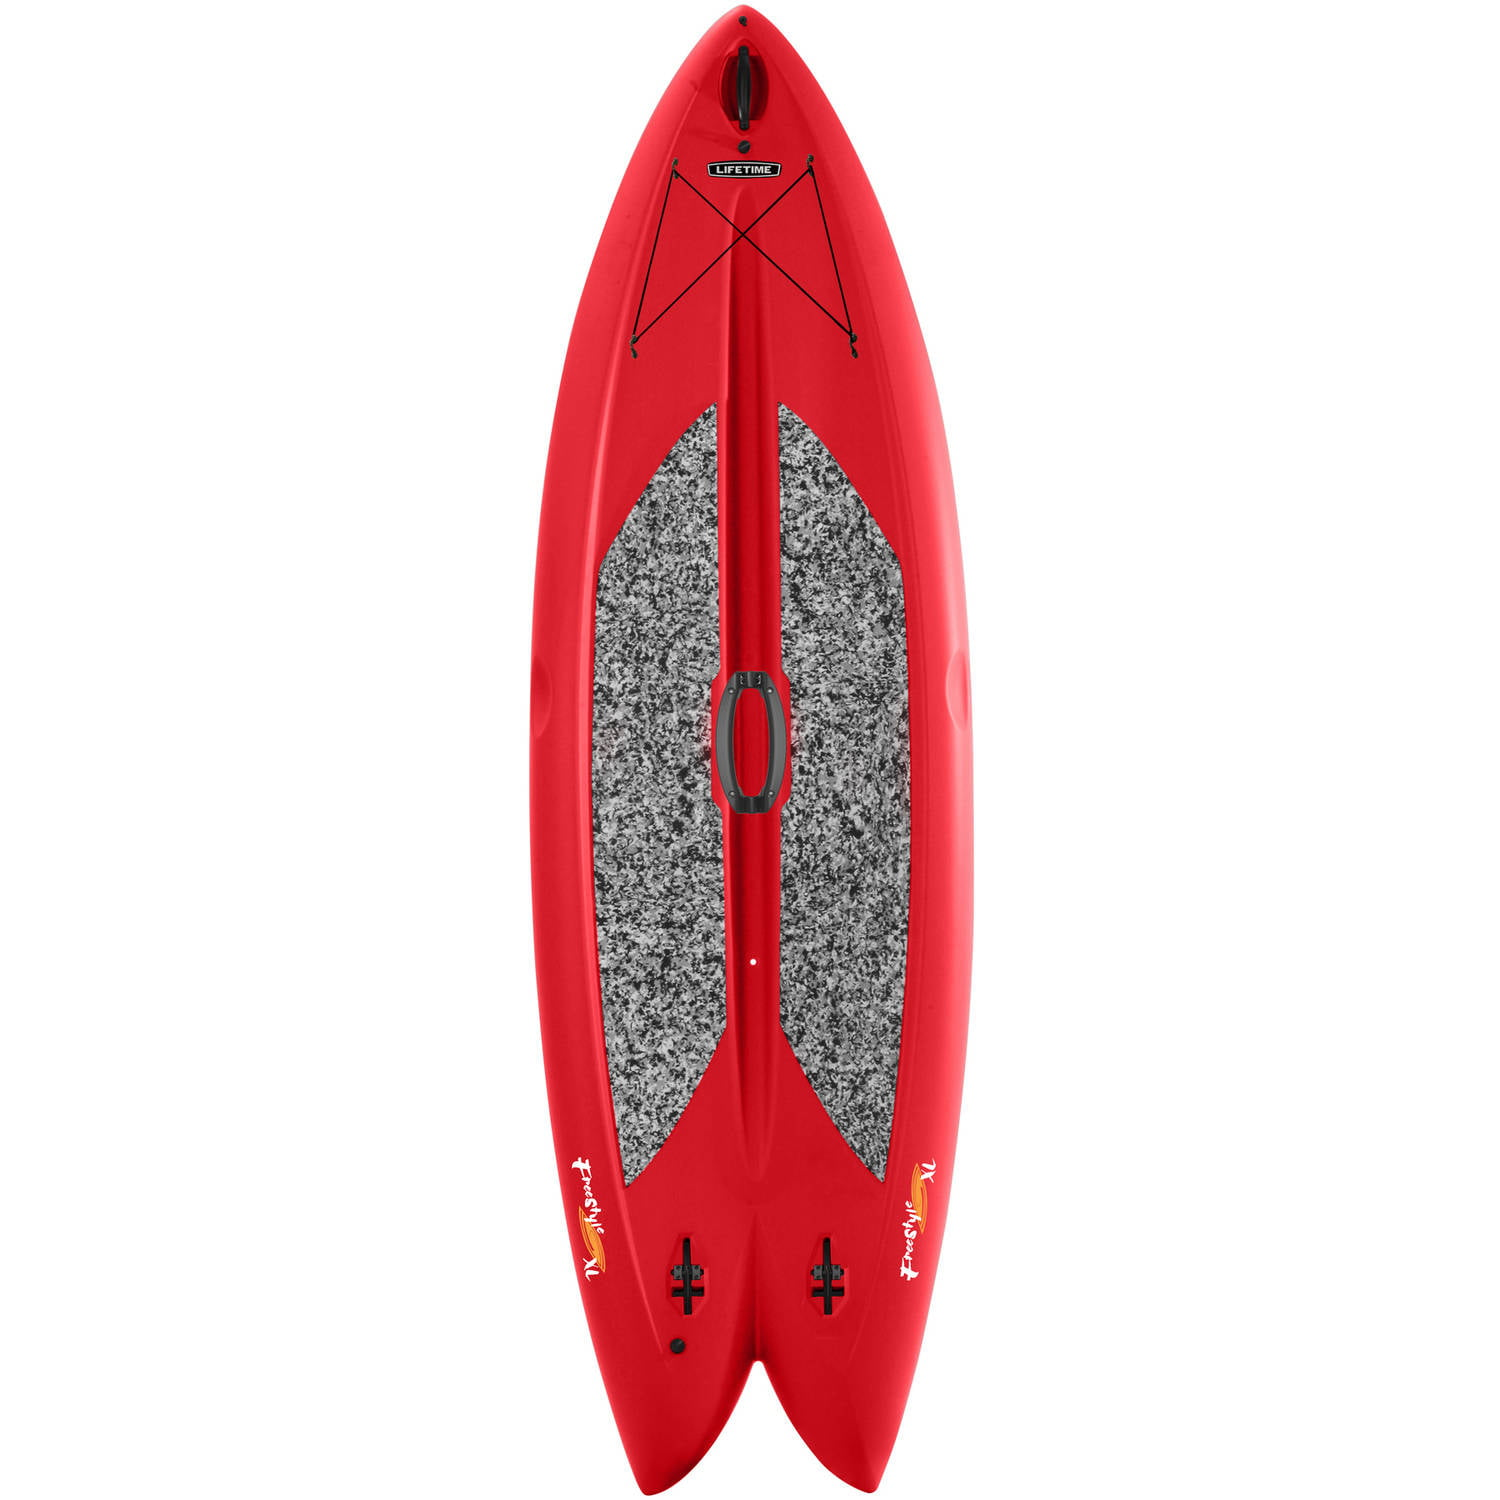 "Lifetime Freestyle 9'8"" Paddleboard with Paddle In Red by Lifetime"